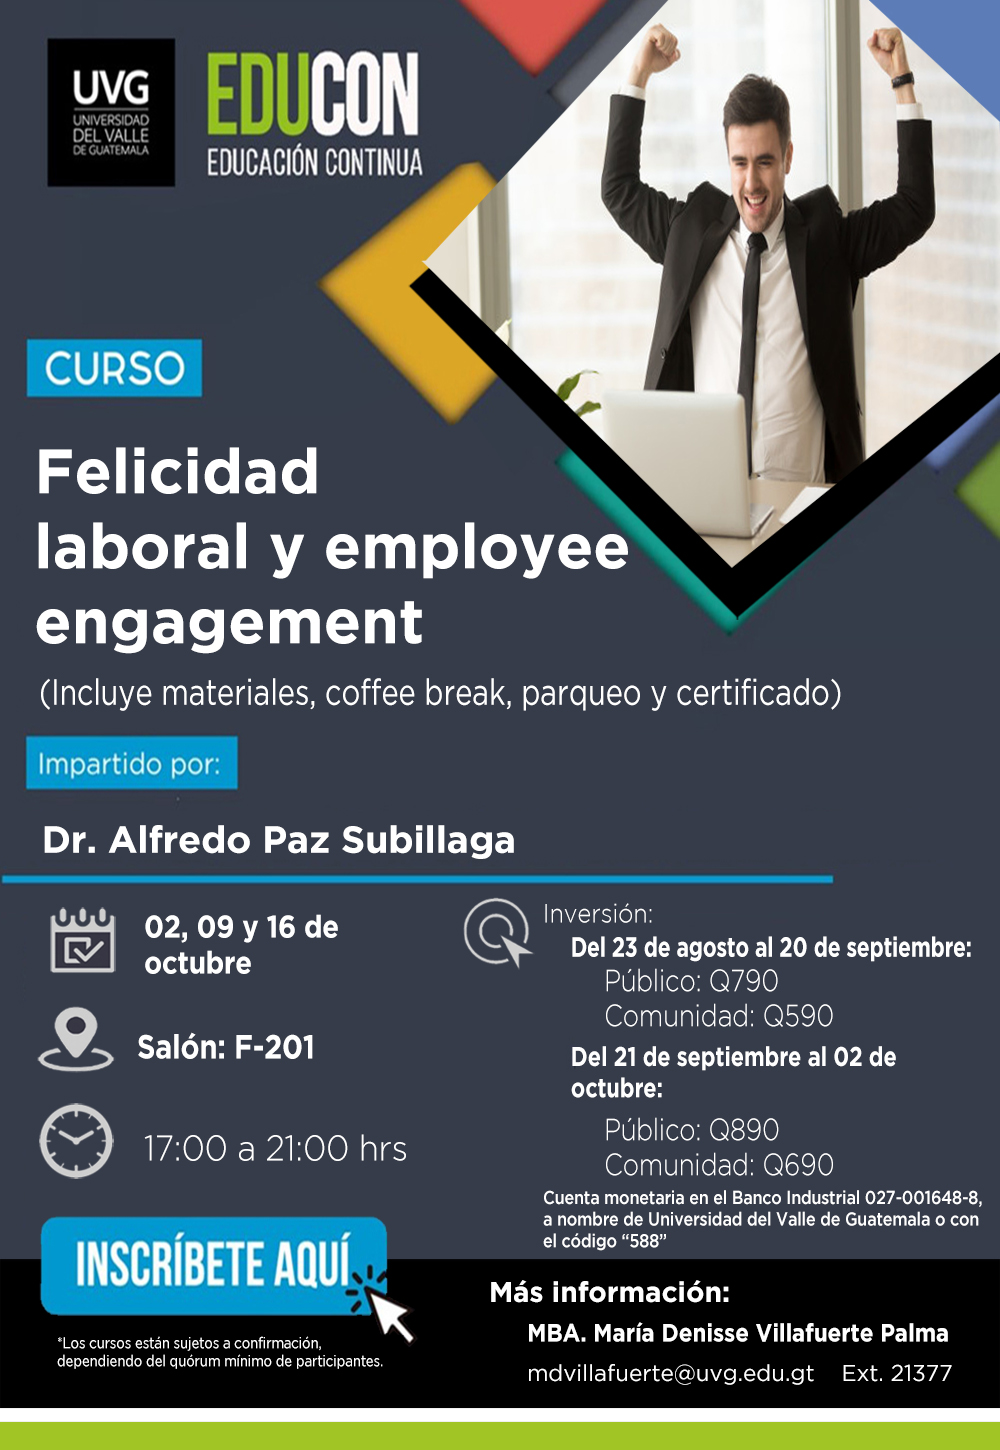 FELICIDAD LABORAL Y EMPLOYEE ENGAGEMENT